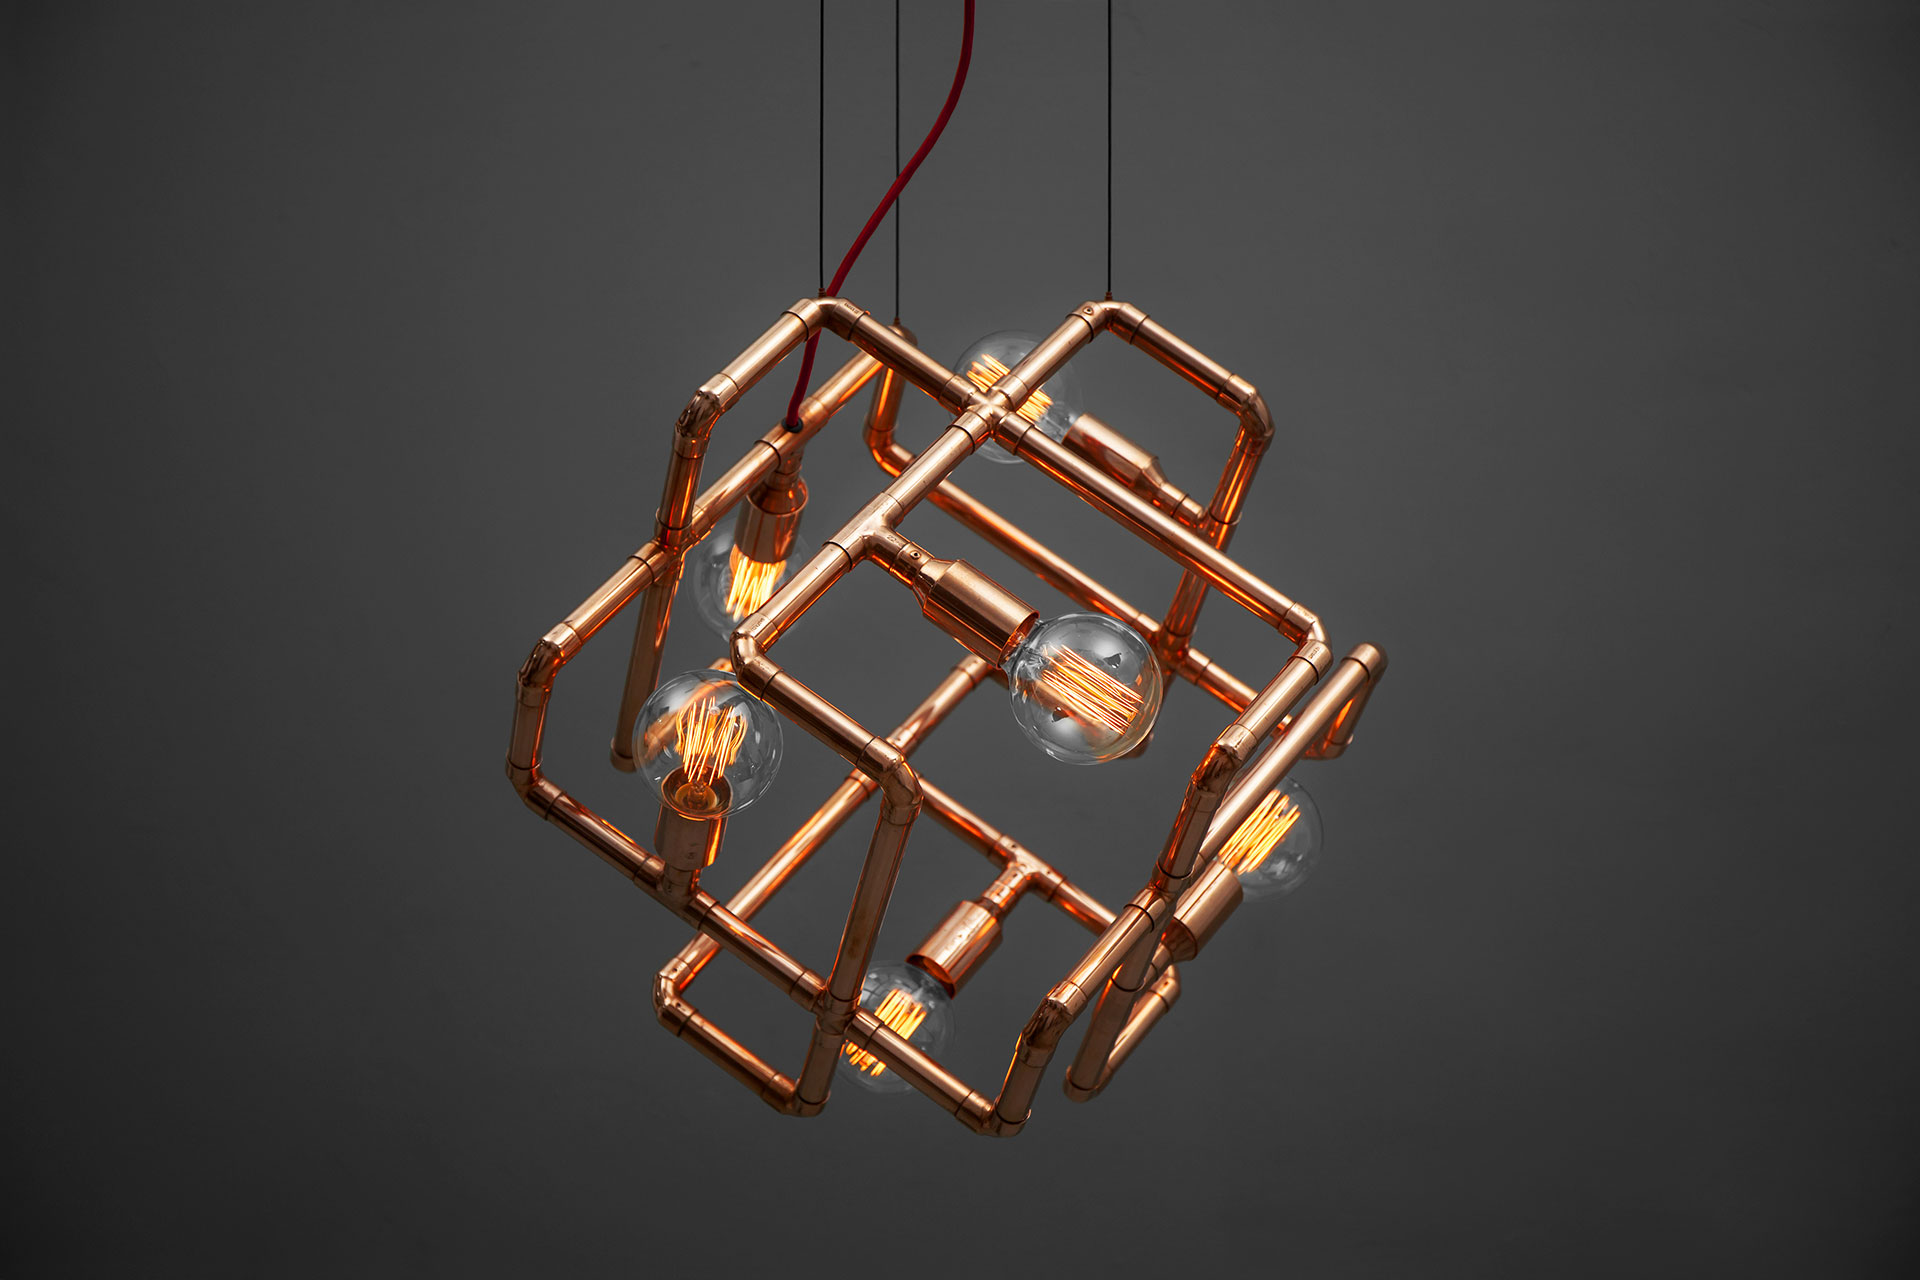 Unique 6-lights ceiling lamp in copper or gold color inspired by conceptual design